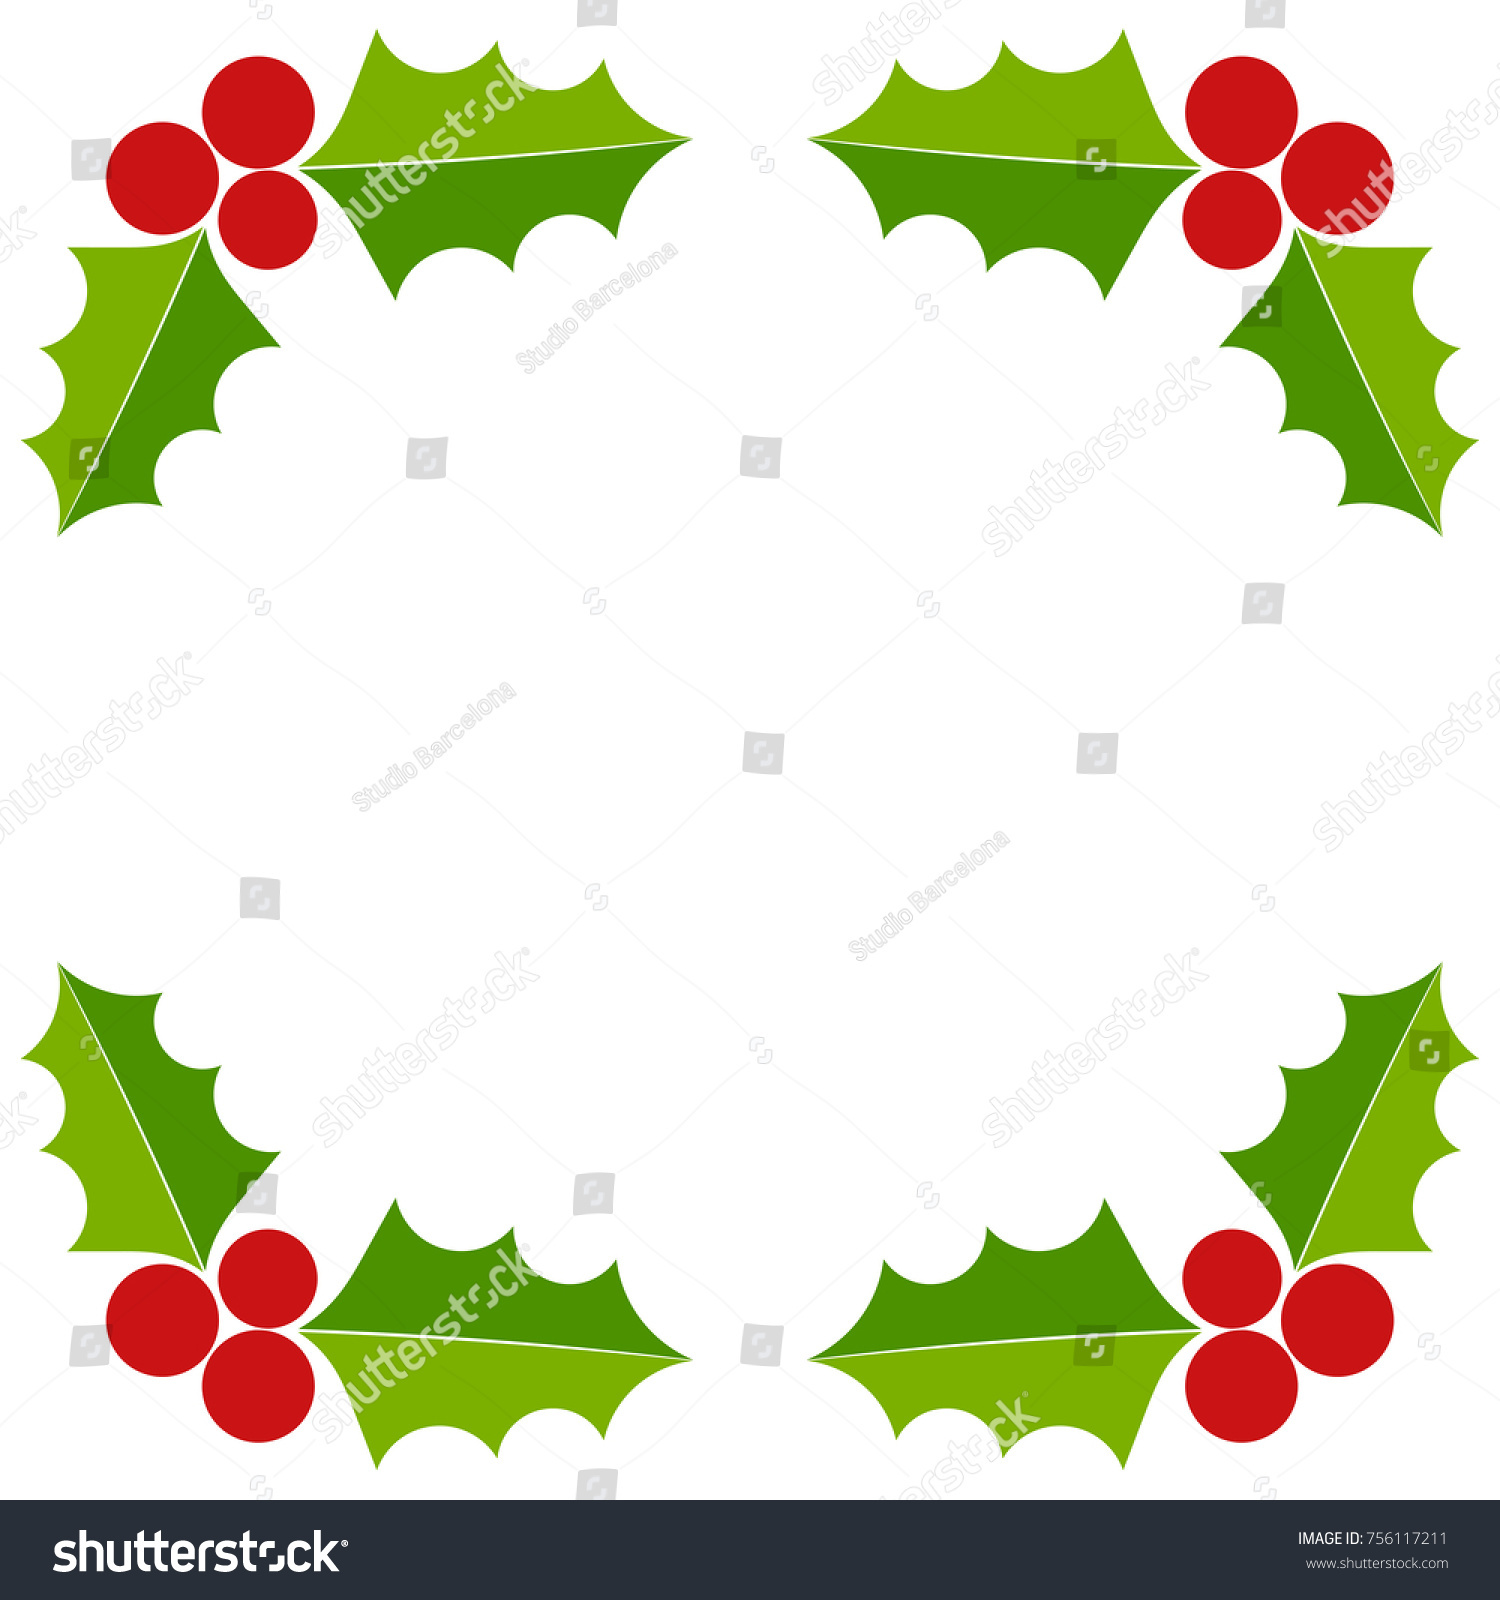 Holly berry christmas border greeting card stock vector 756117211 holly berry christmas border greeting card illustration kristyandbryce Choice Image